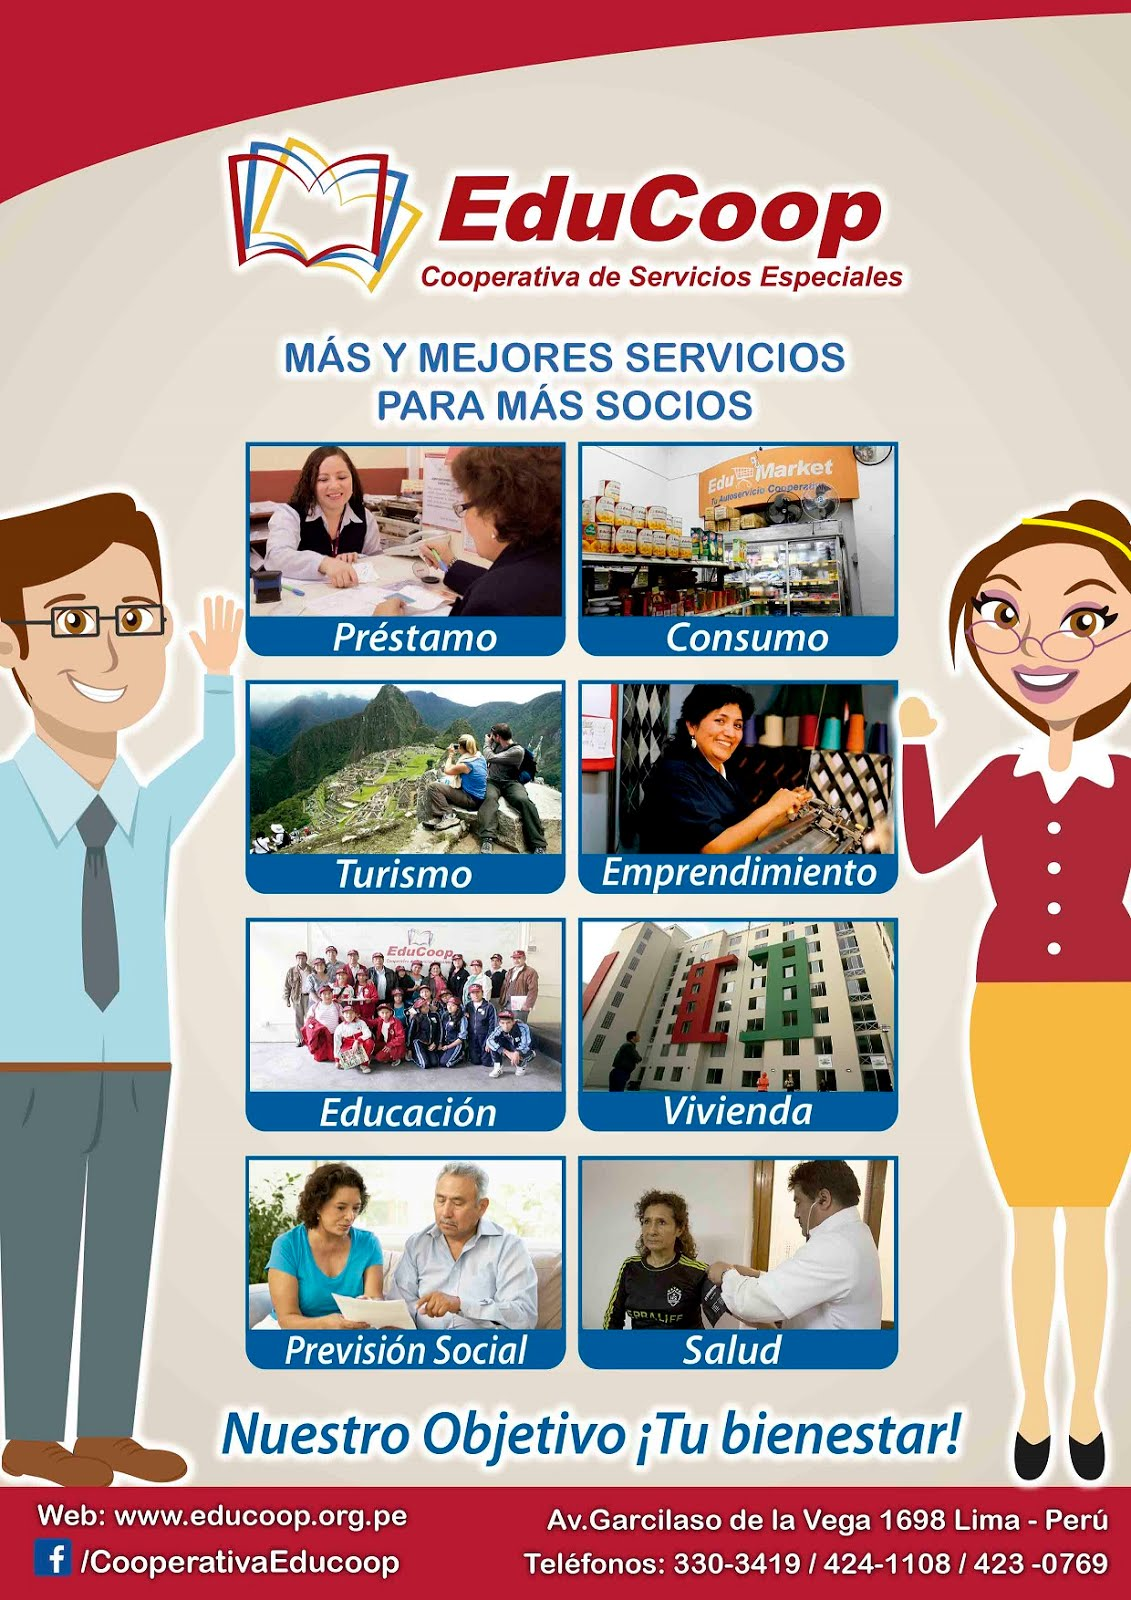 SERVICIOS DE LA COOPERATIVA EDUCOOP